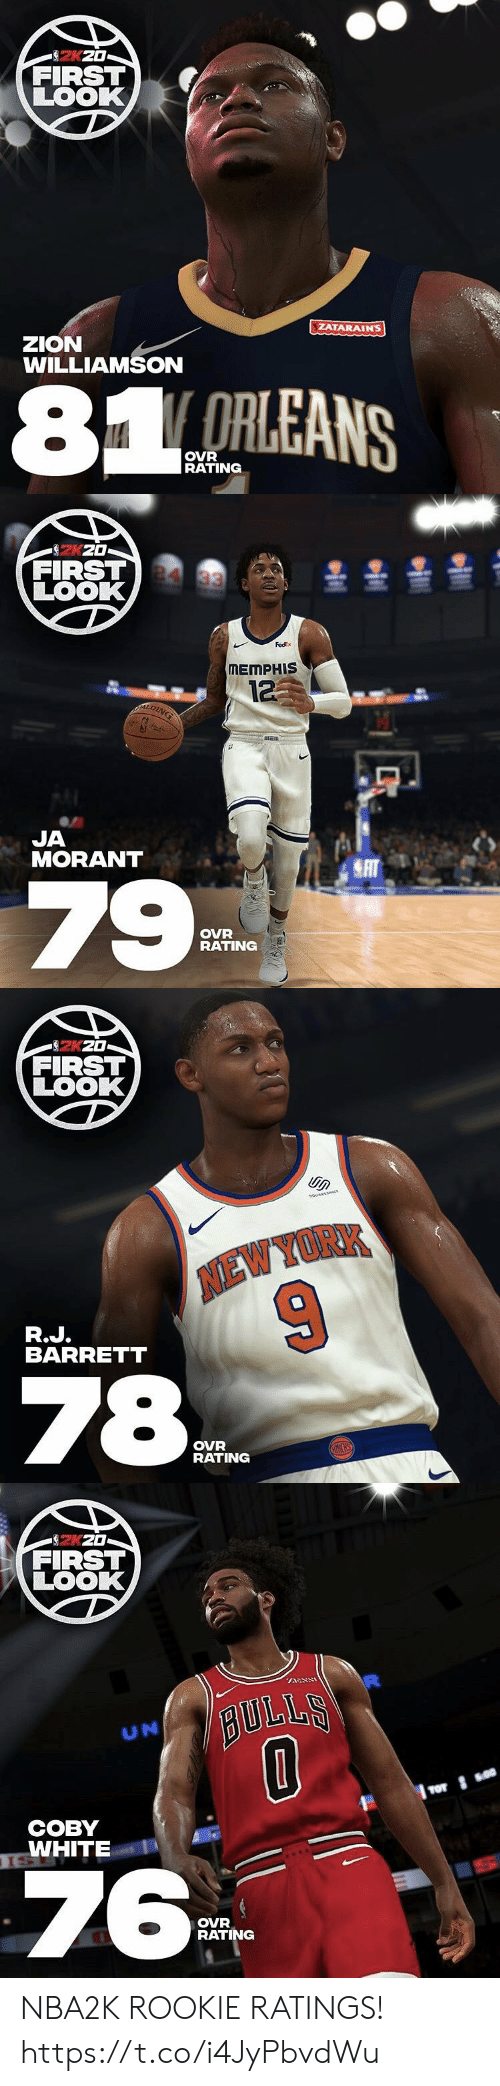 Fedex: 2KZ0  FIRST  LOOK  ZATARAINS  zZION  WILLIAMSON  81 ORLEANS  OVR  RATING   을 훌올을  FIRST 4 33  LOOK  FedEx  MEMPHIS  12  JA  MORANT  SAT  79  OVR  RATING   FIRST  LOOK  soUARESPACE  NEW YORK  R.J.  BARRETT  78  OVR  RATING  HCHKS   FIRST  LOOK  BULLS  UN  СОВY  TSWHITE  ISE  76  OVR  RATING NBA2K ROOKIE RATINGS! https://t.co/i4JyPbvdWu